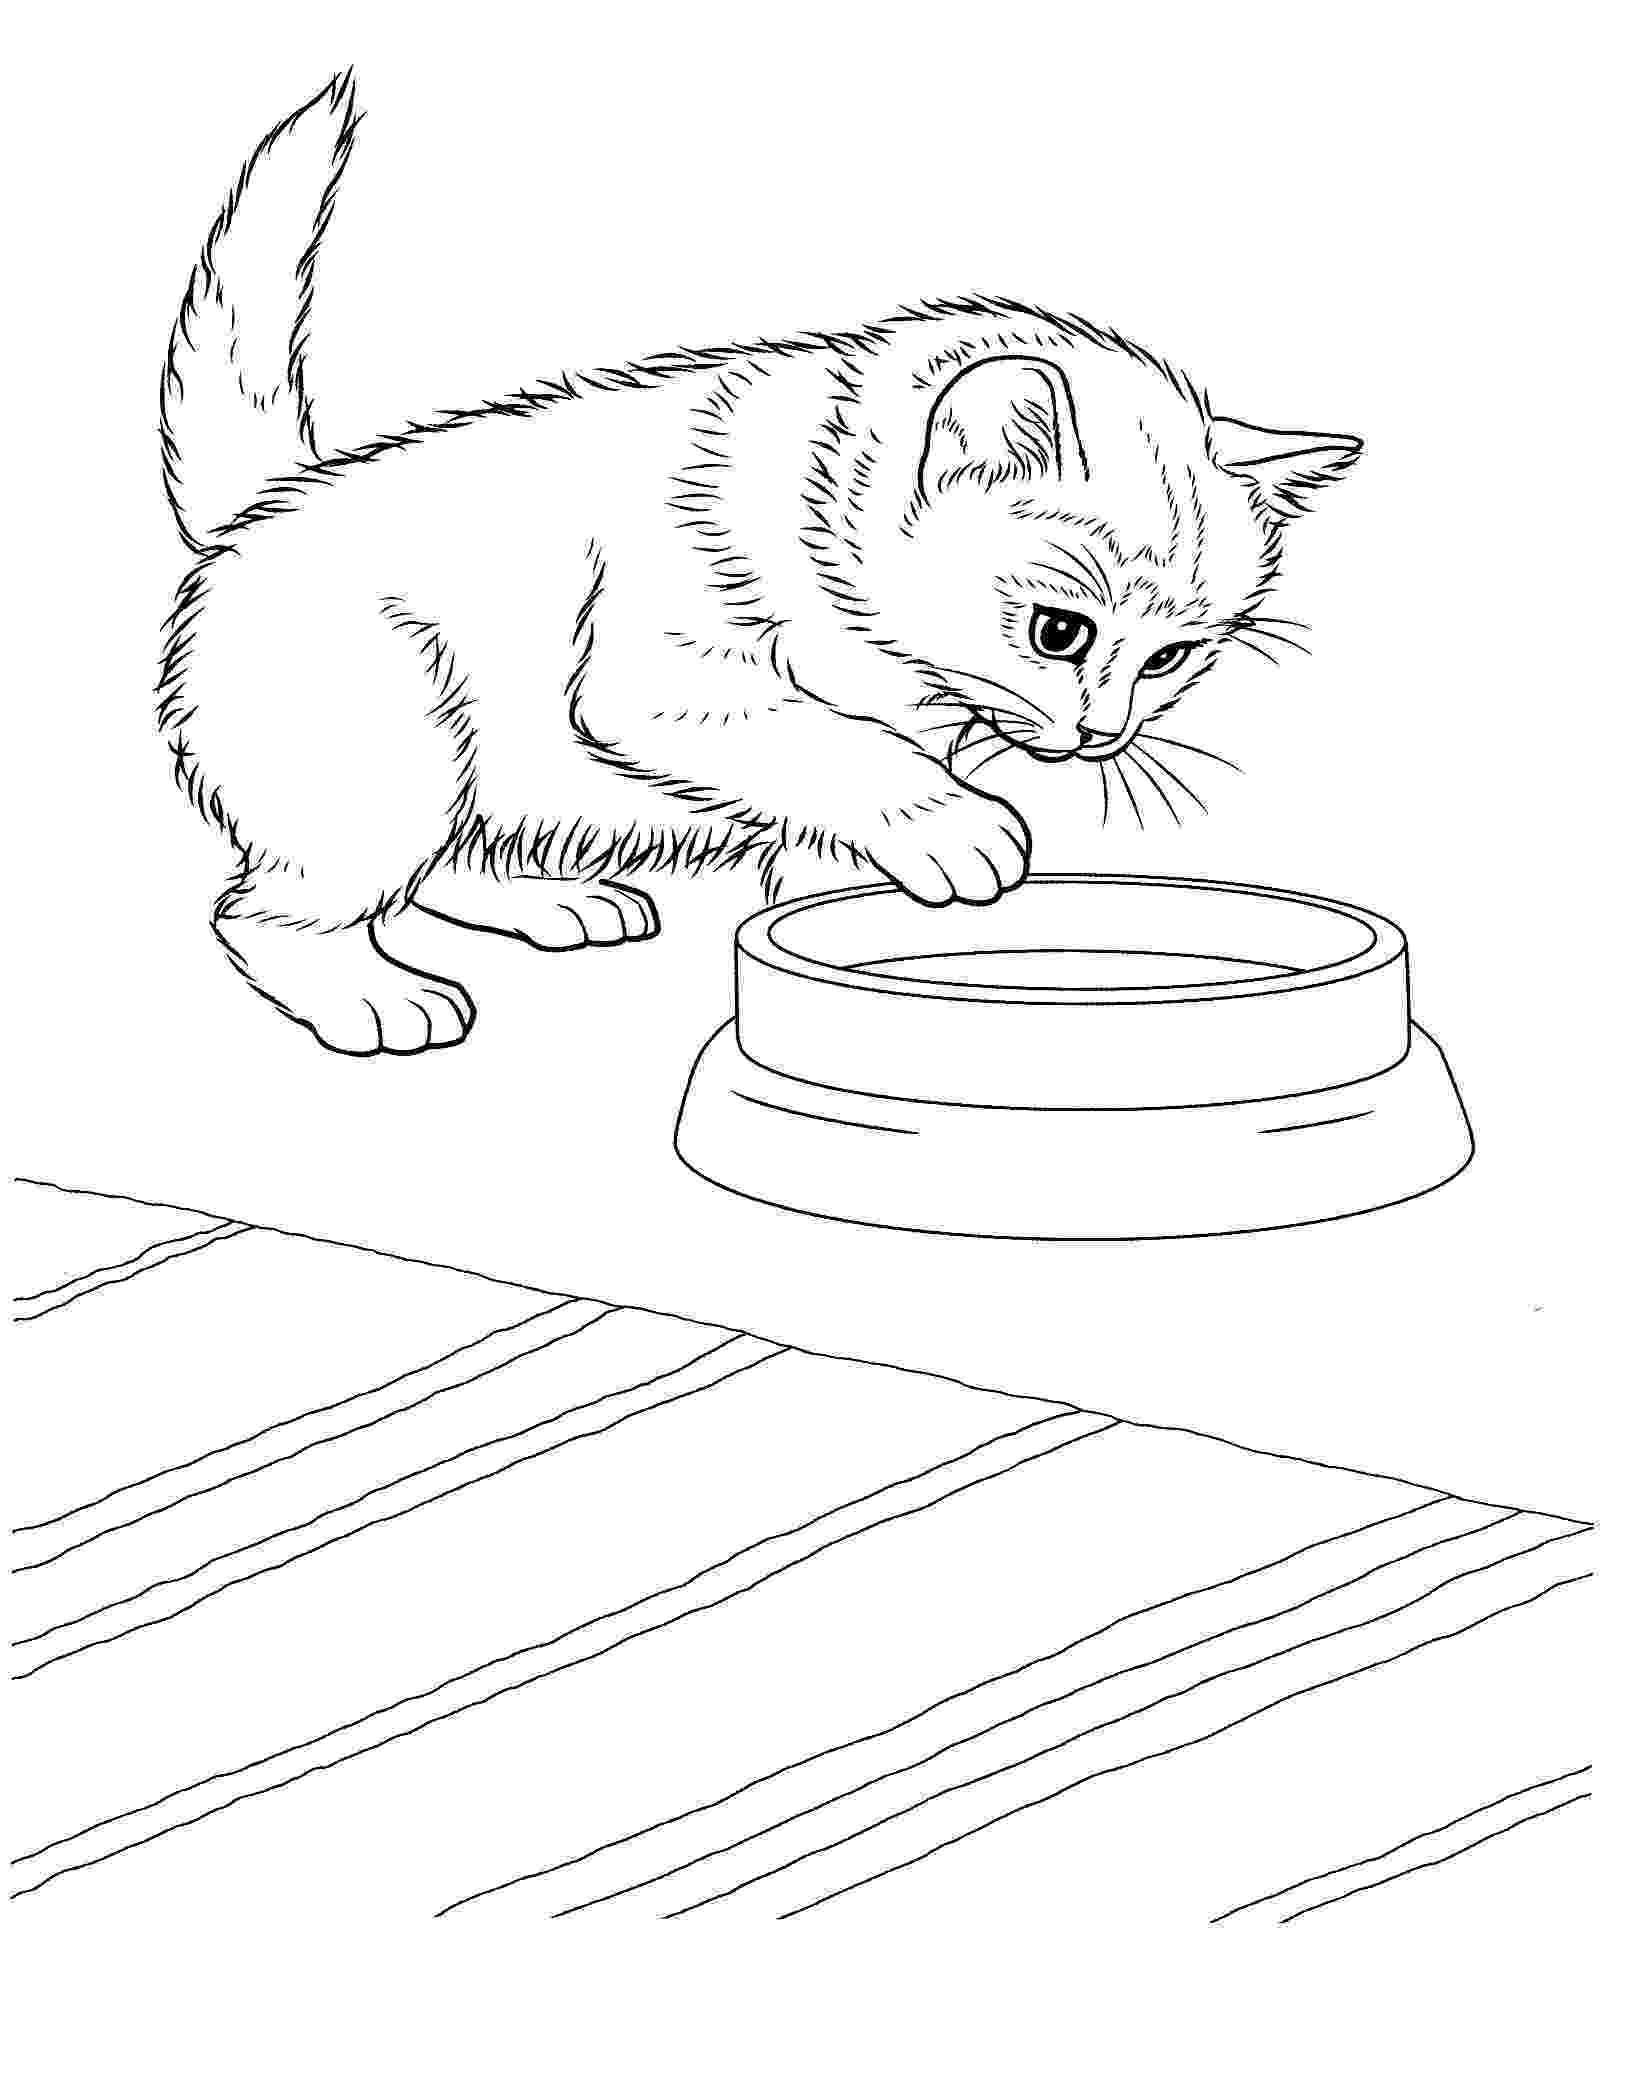 coloring pages of kittens to print free printable kitten coloring pages for kids best to print pages of kittens coloring